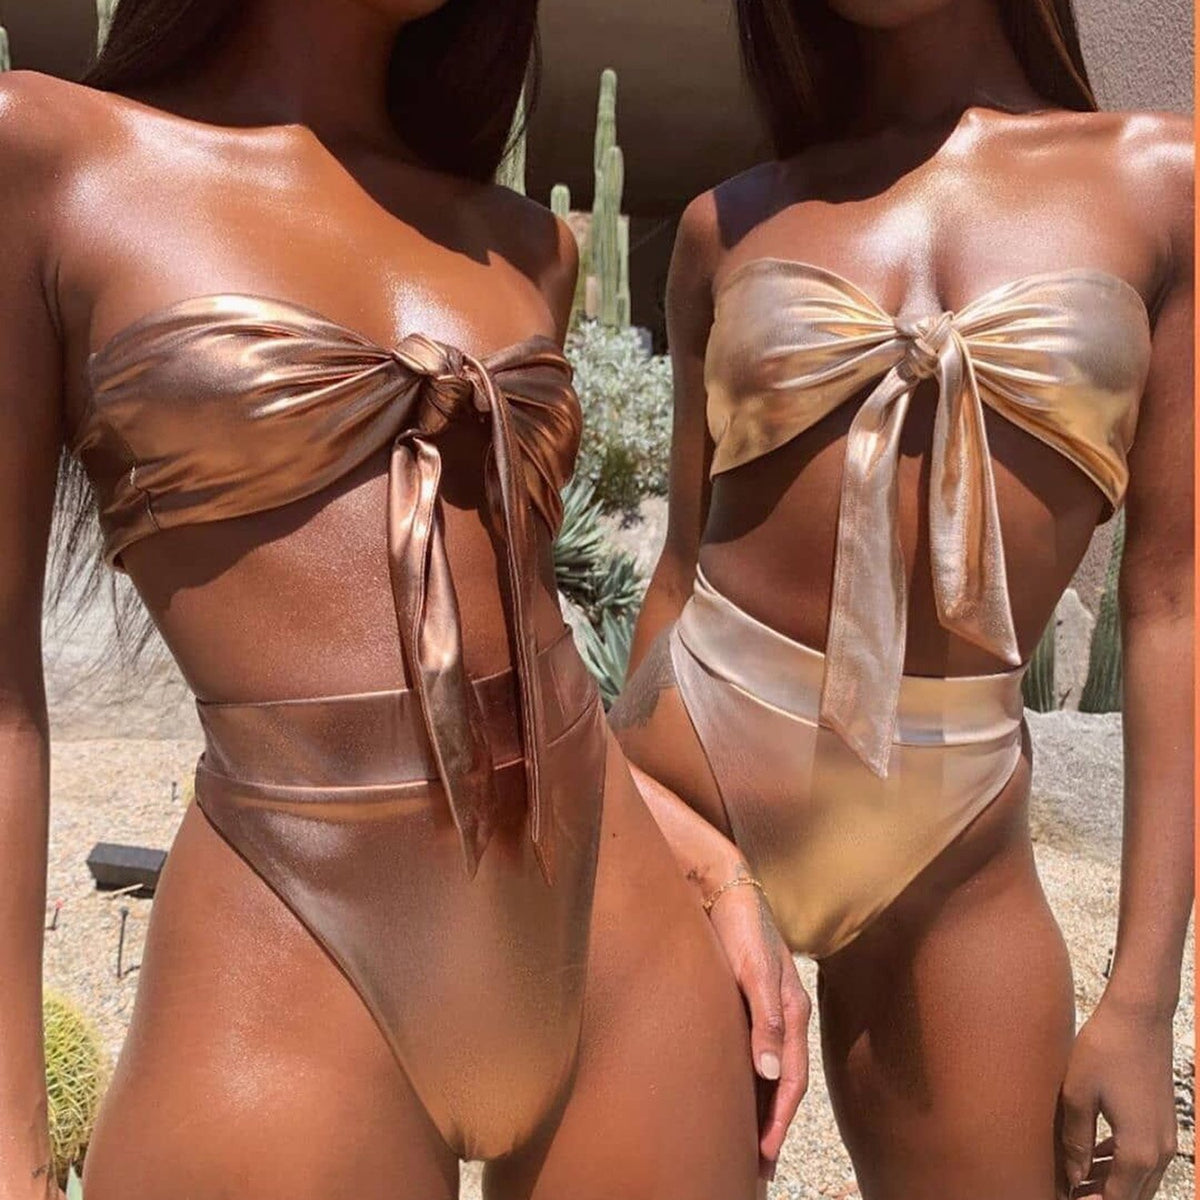 Metallic Front Tie High Waist Bikini Swimsuit - worthtryit.com